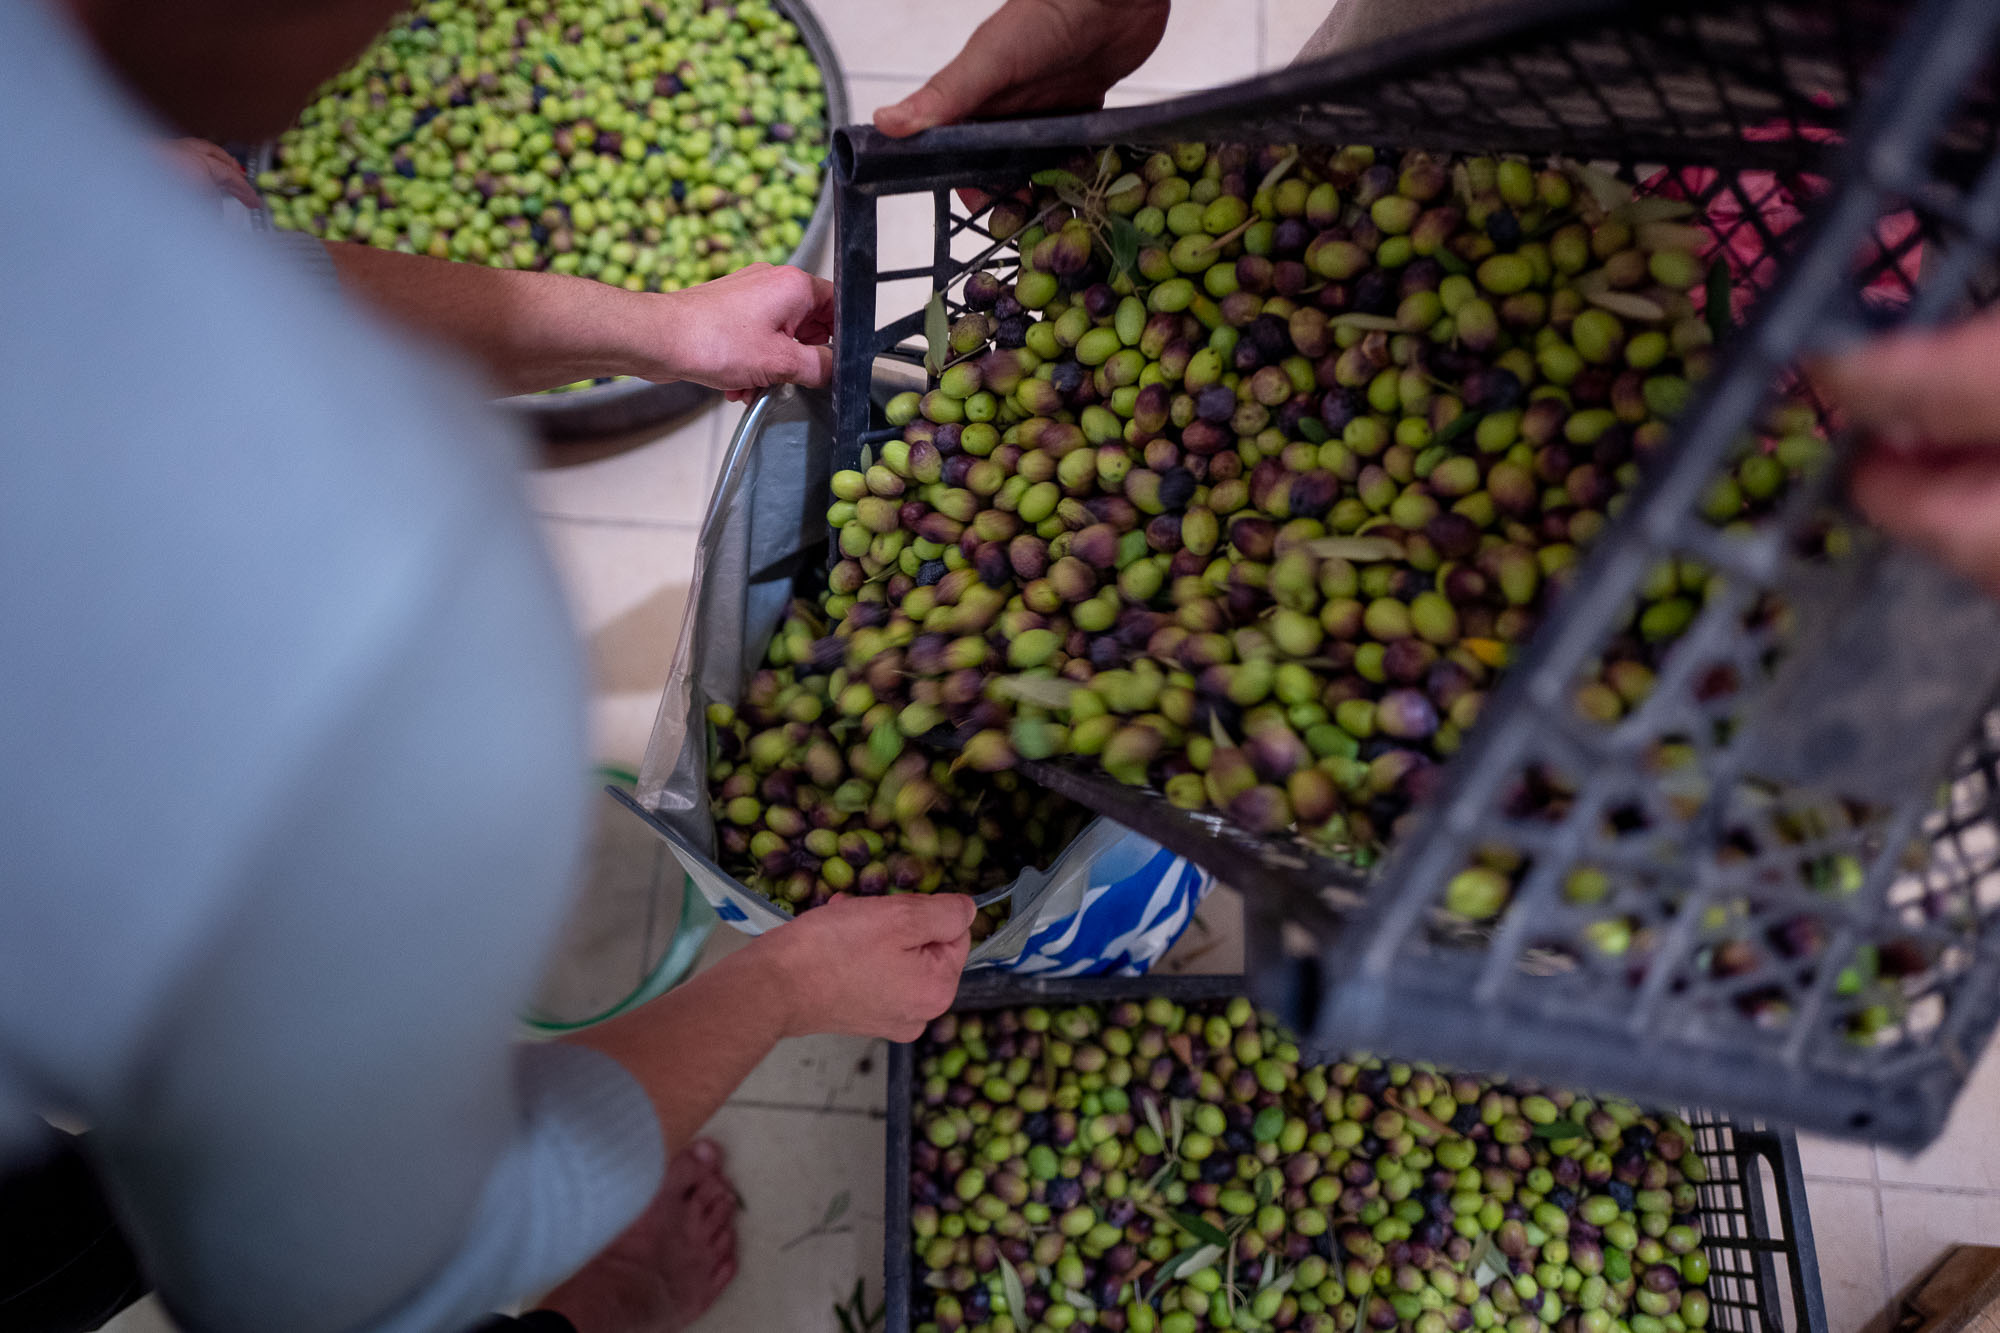 Pouring olives from a crate into a plastic bag